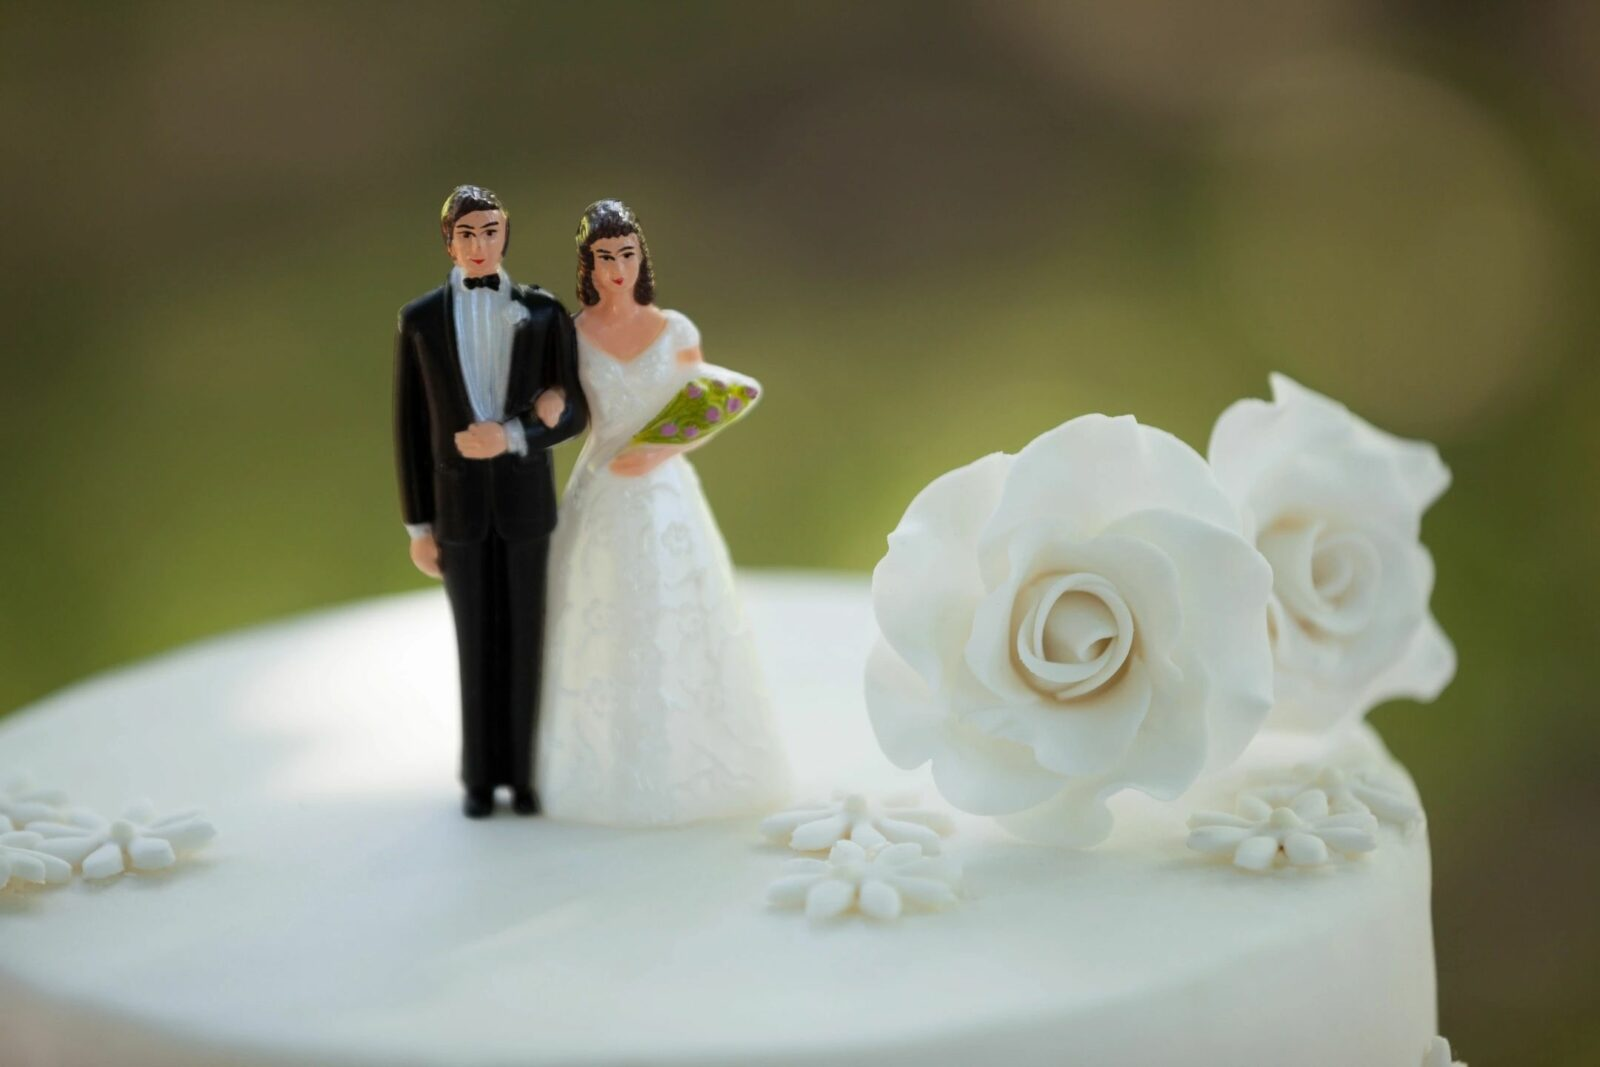 a photo of a Bride and Groom Wedding Cake Topper